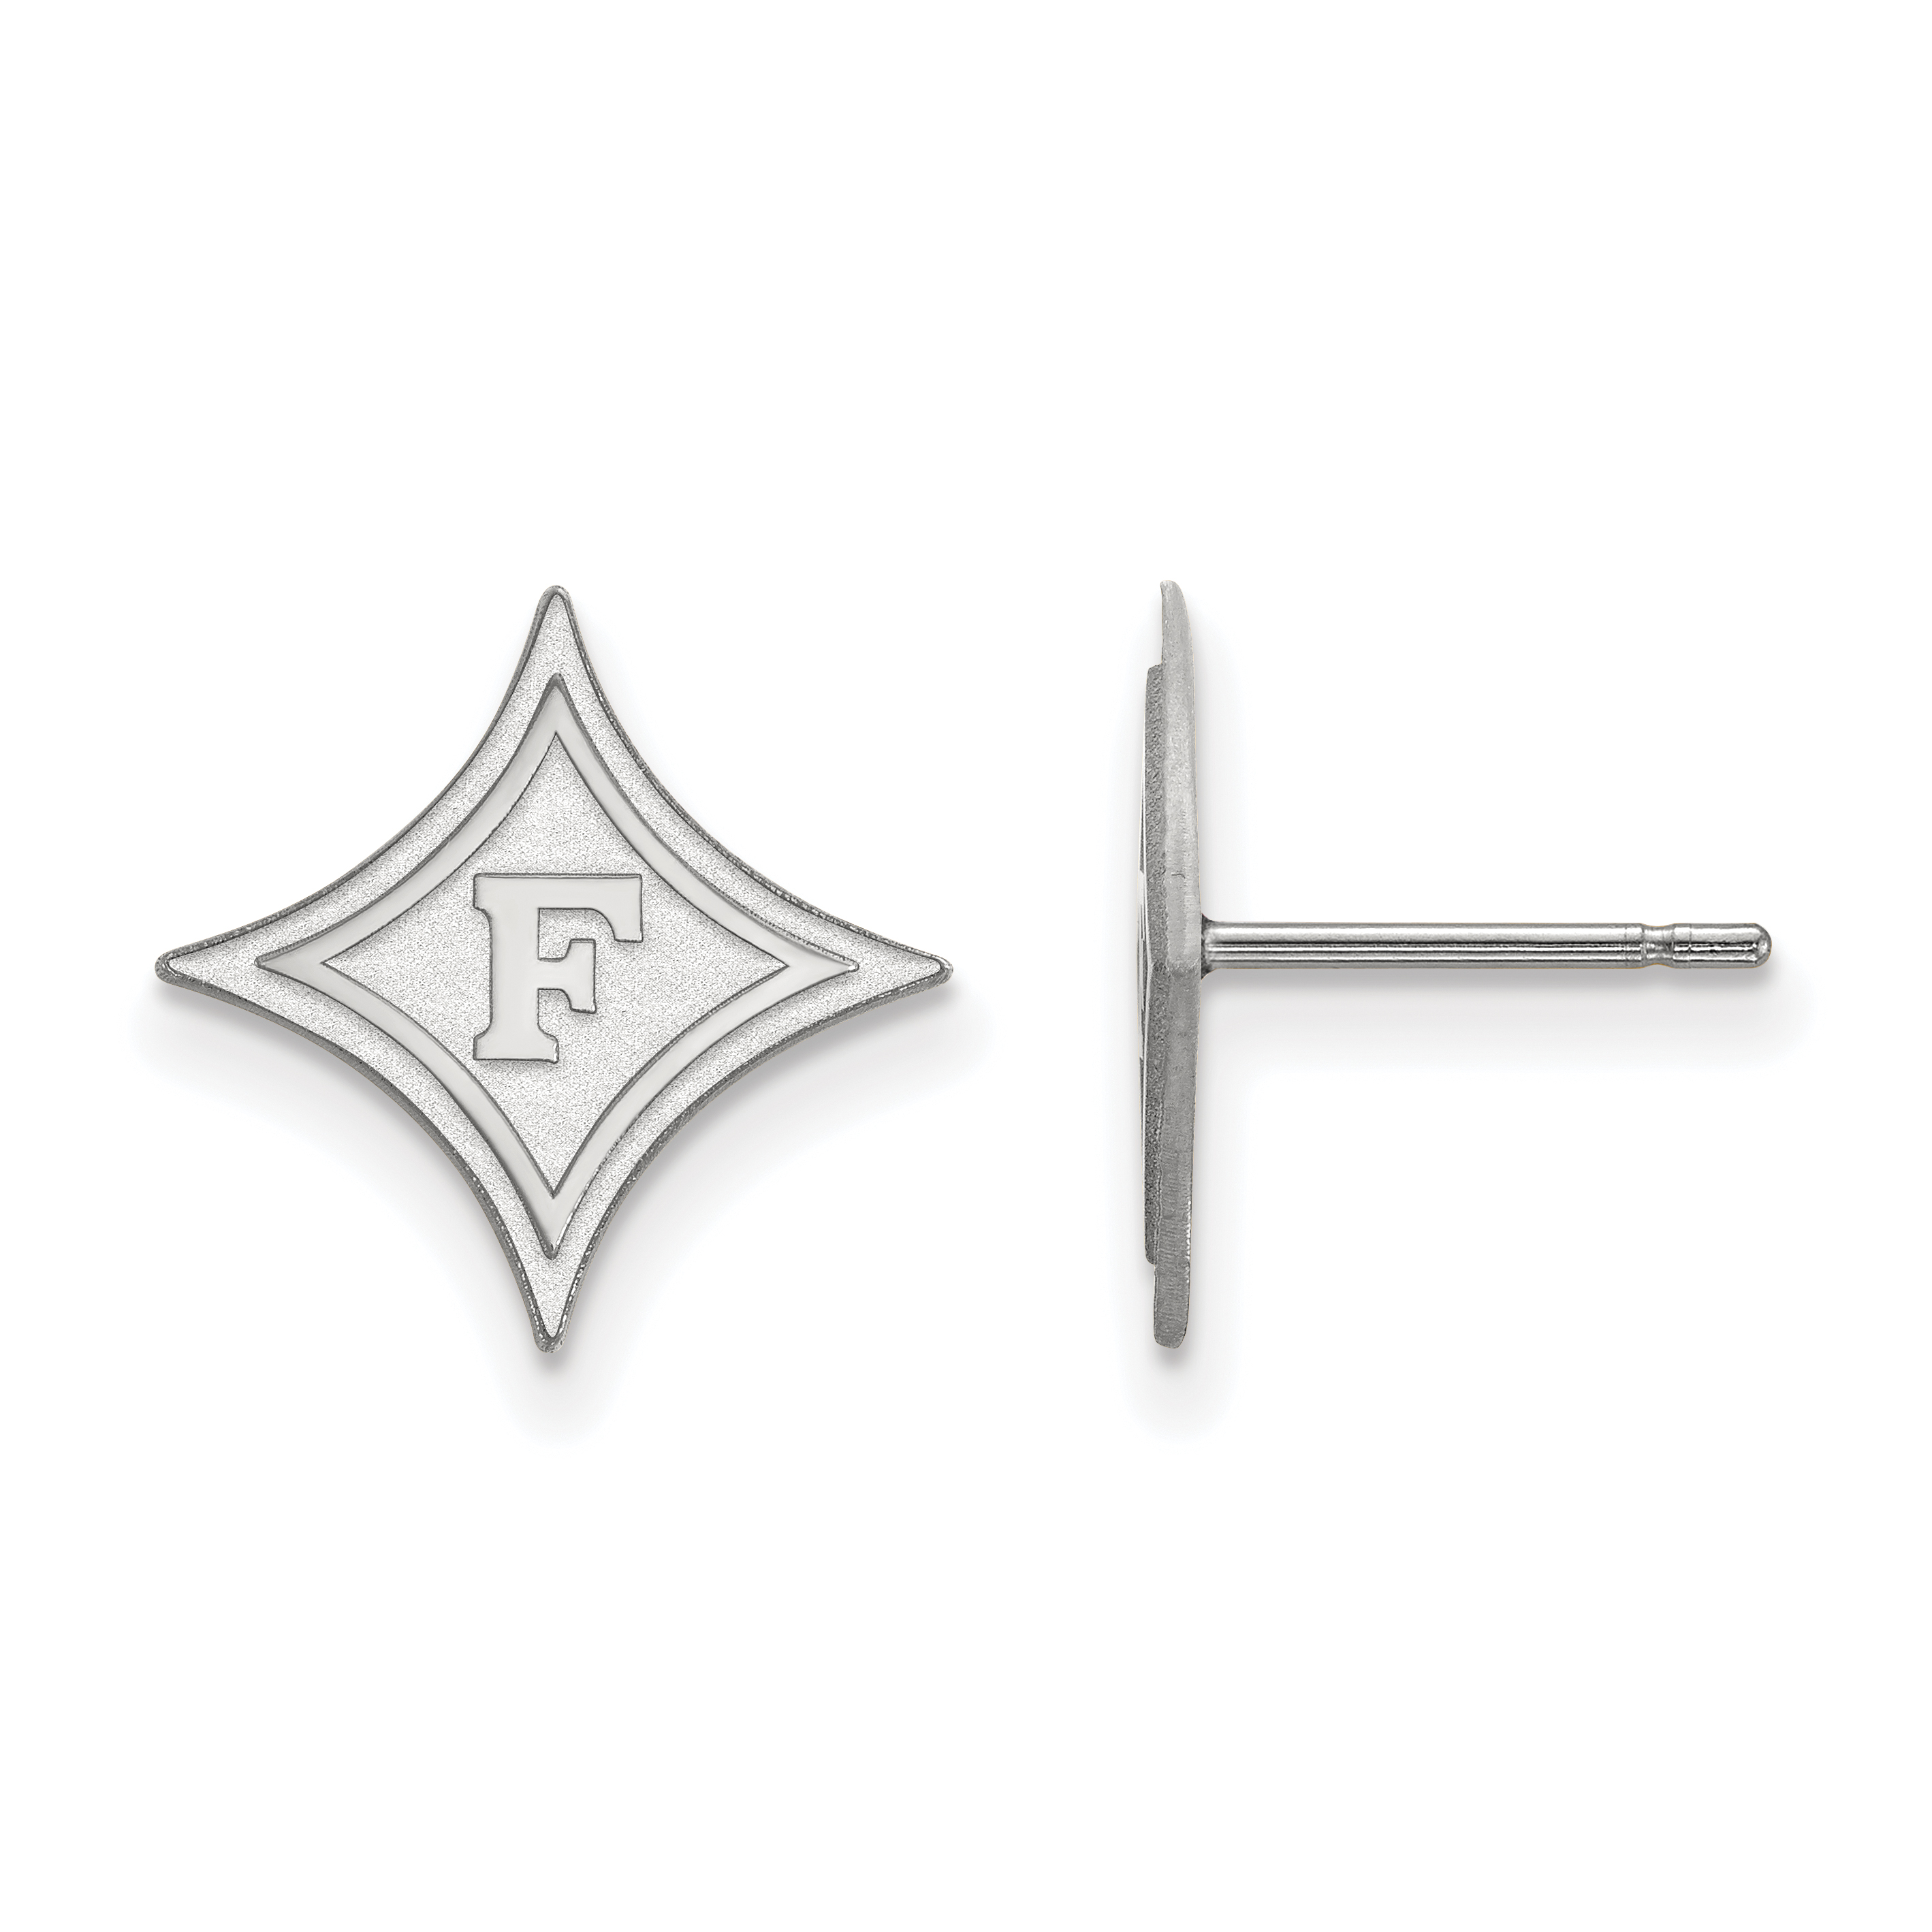 10kw Furman University Small Post Earrings. weight: 0.78, Lengh: 12mm